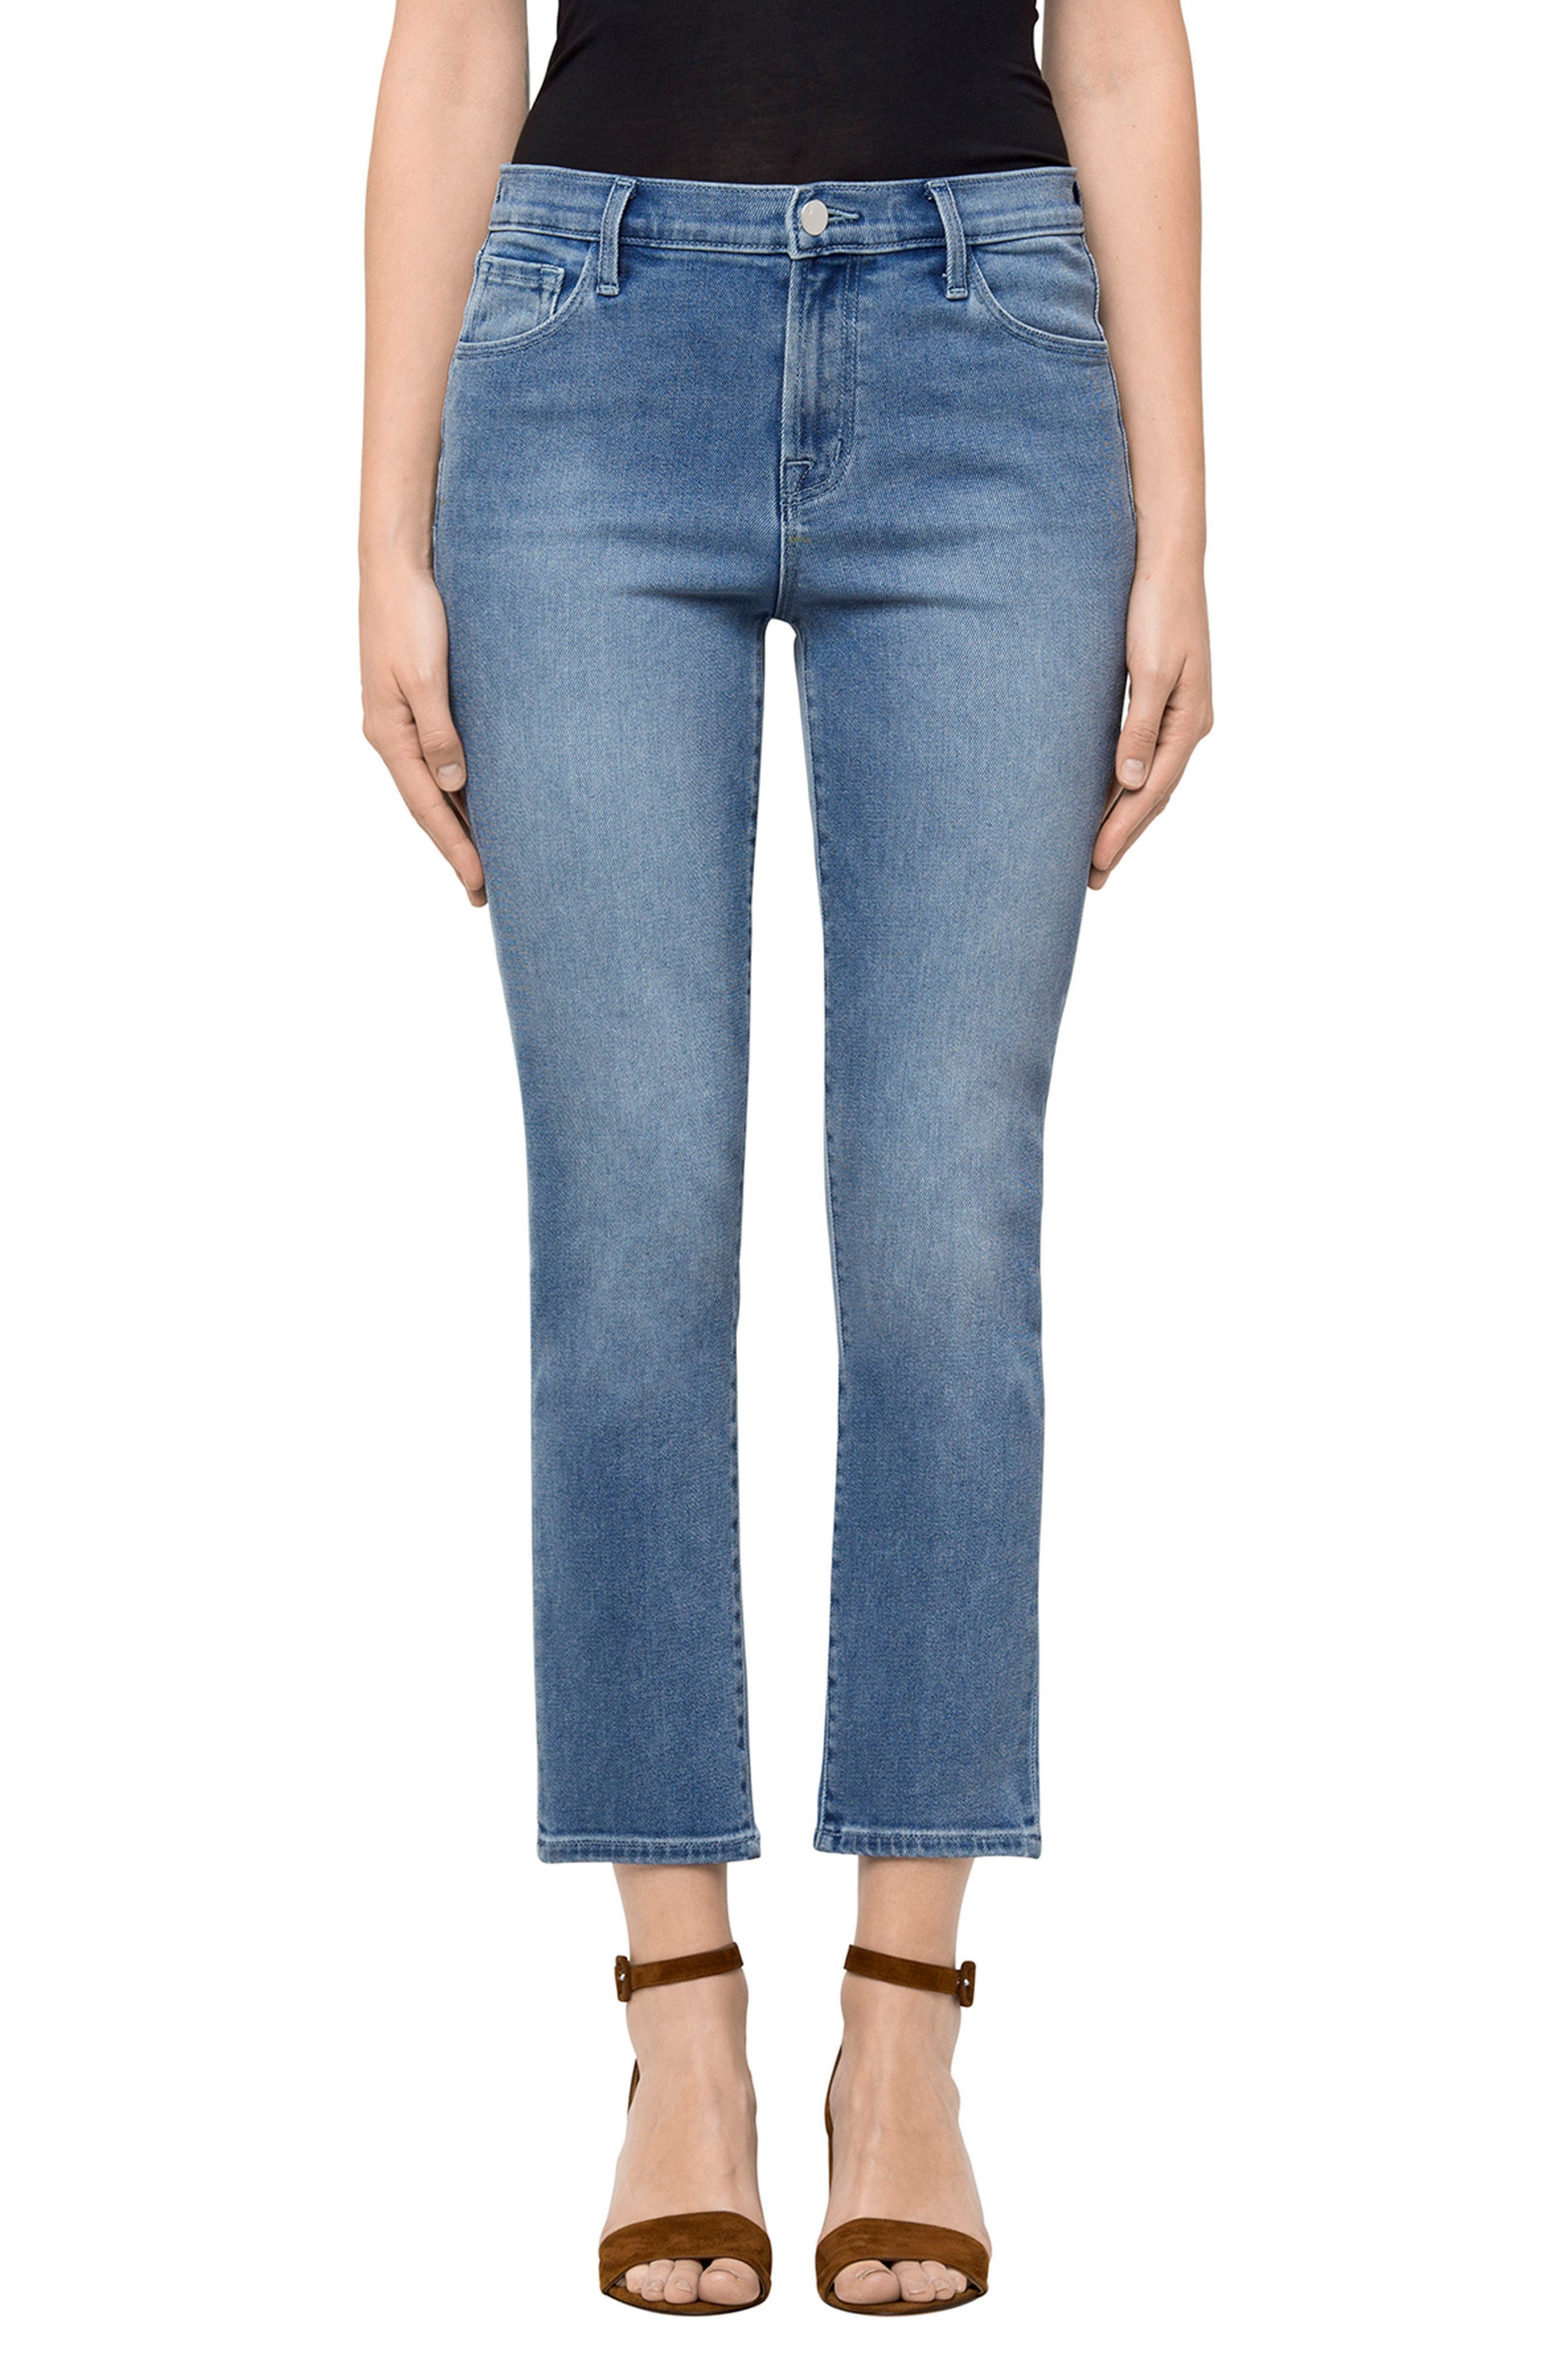 Alternate Image 1 Selected - J Brand Ruby High Waist Crop Jeans (Utopia)